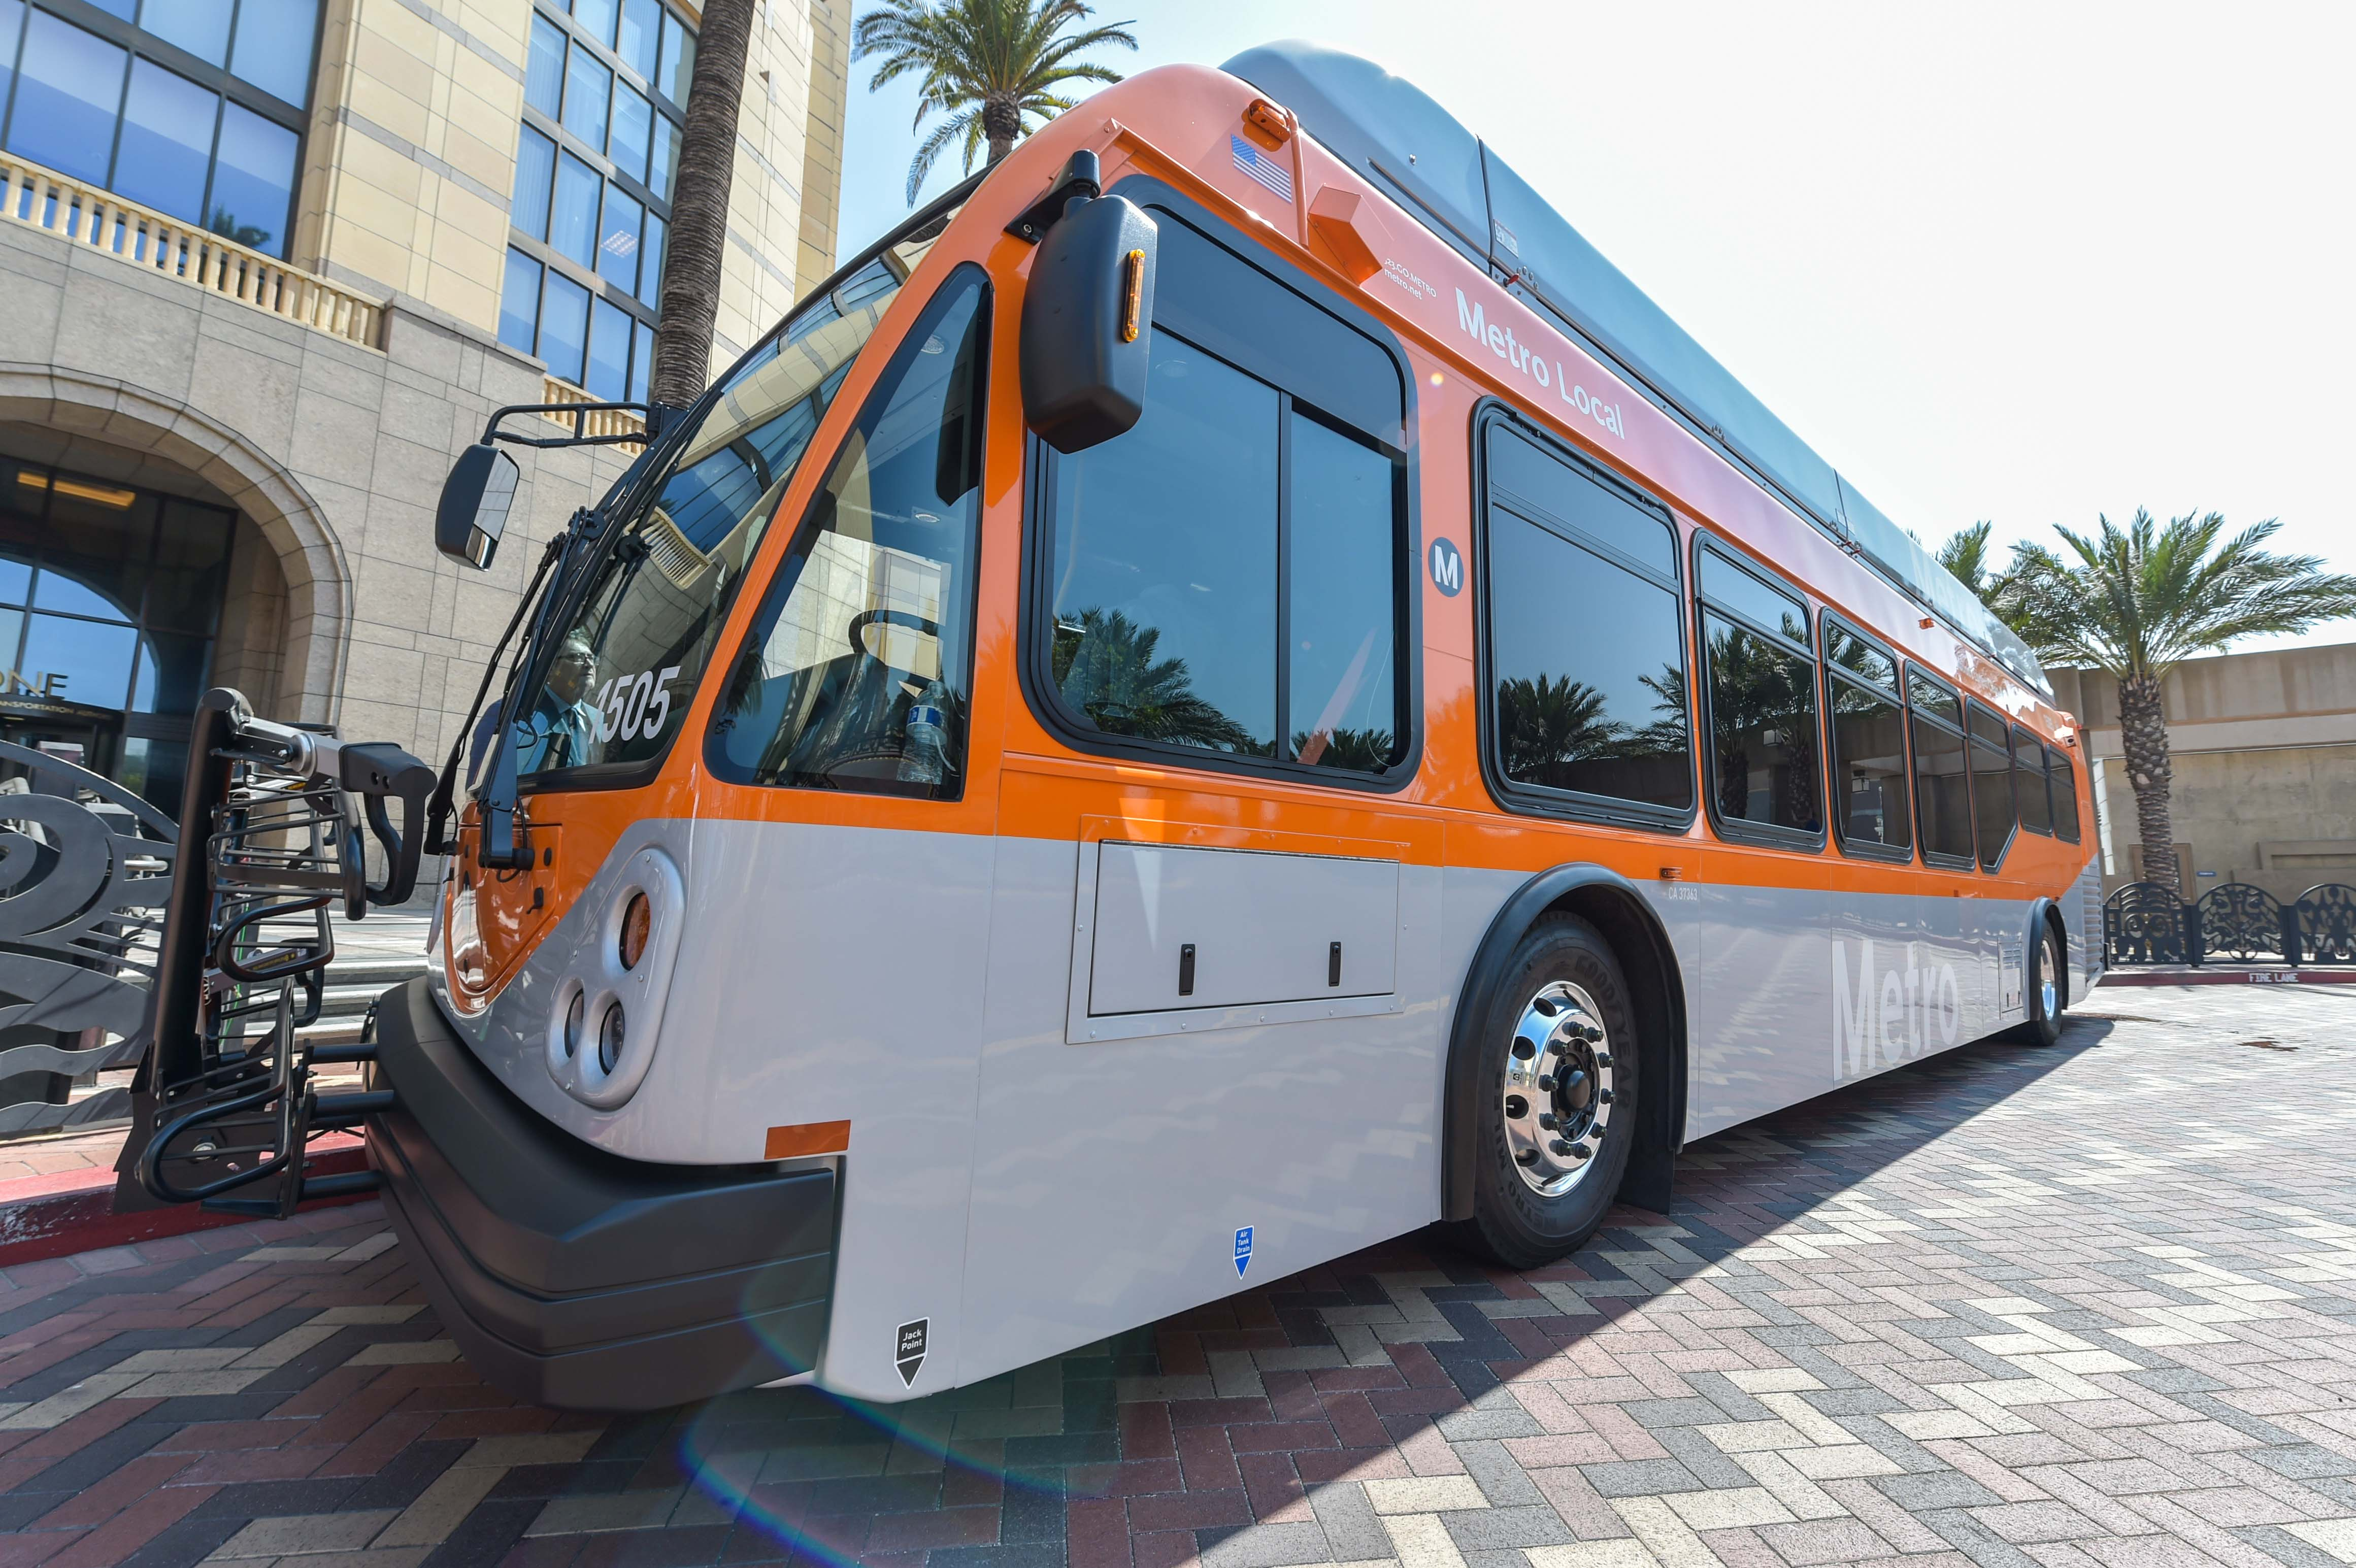 Metro takes delivery of first bus with USB chargers - The Source